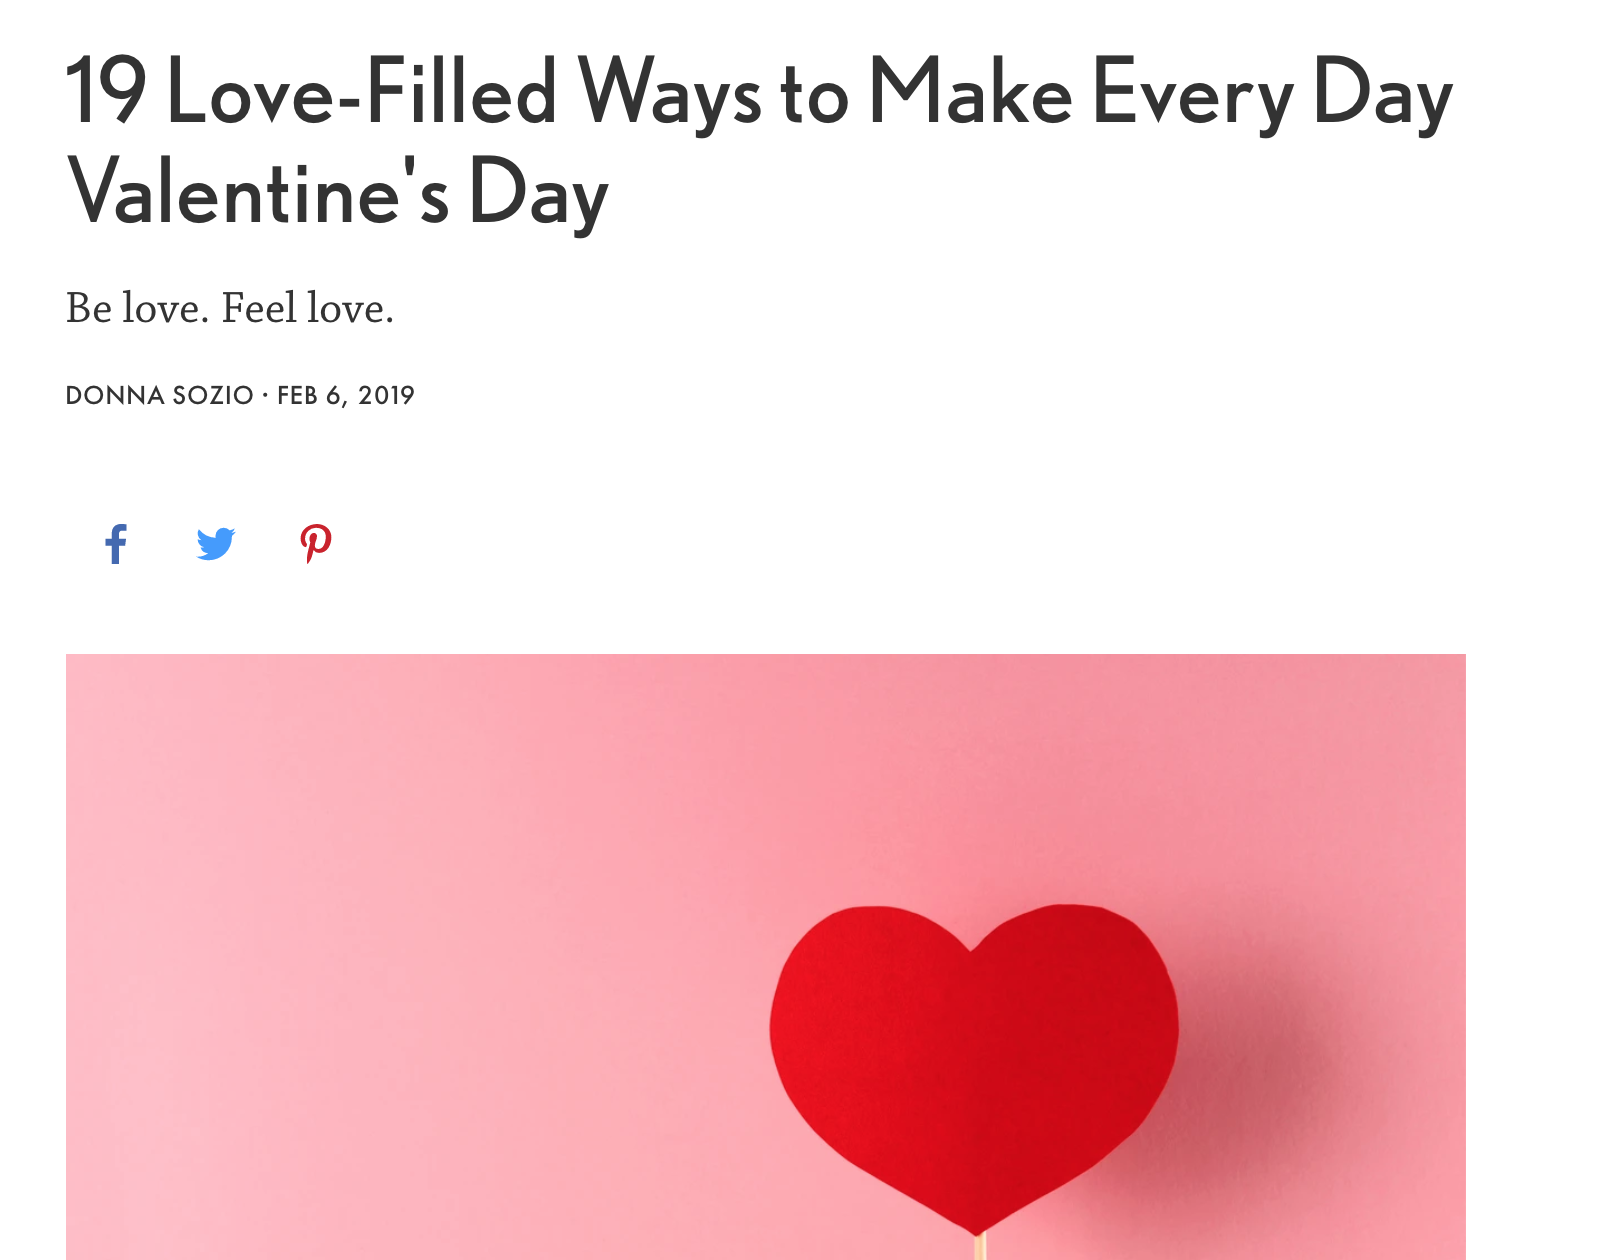 It's almost Valentine's Day and the energy of    love    is definitely in the air. Whatever your heart's desire - here are 19 ways to raise the vibration of love in your life to give you all the good feels.